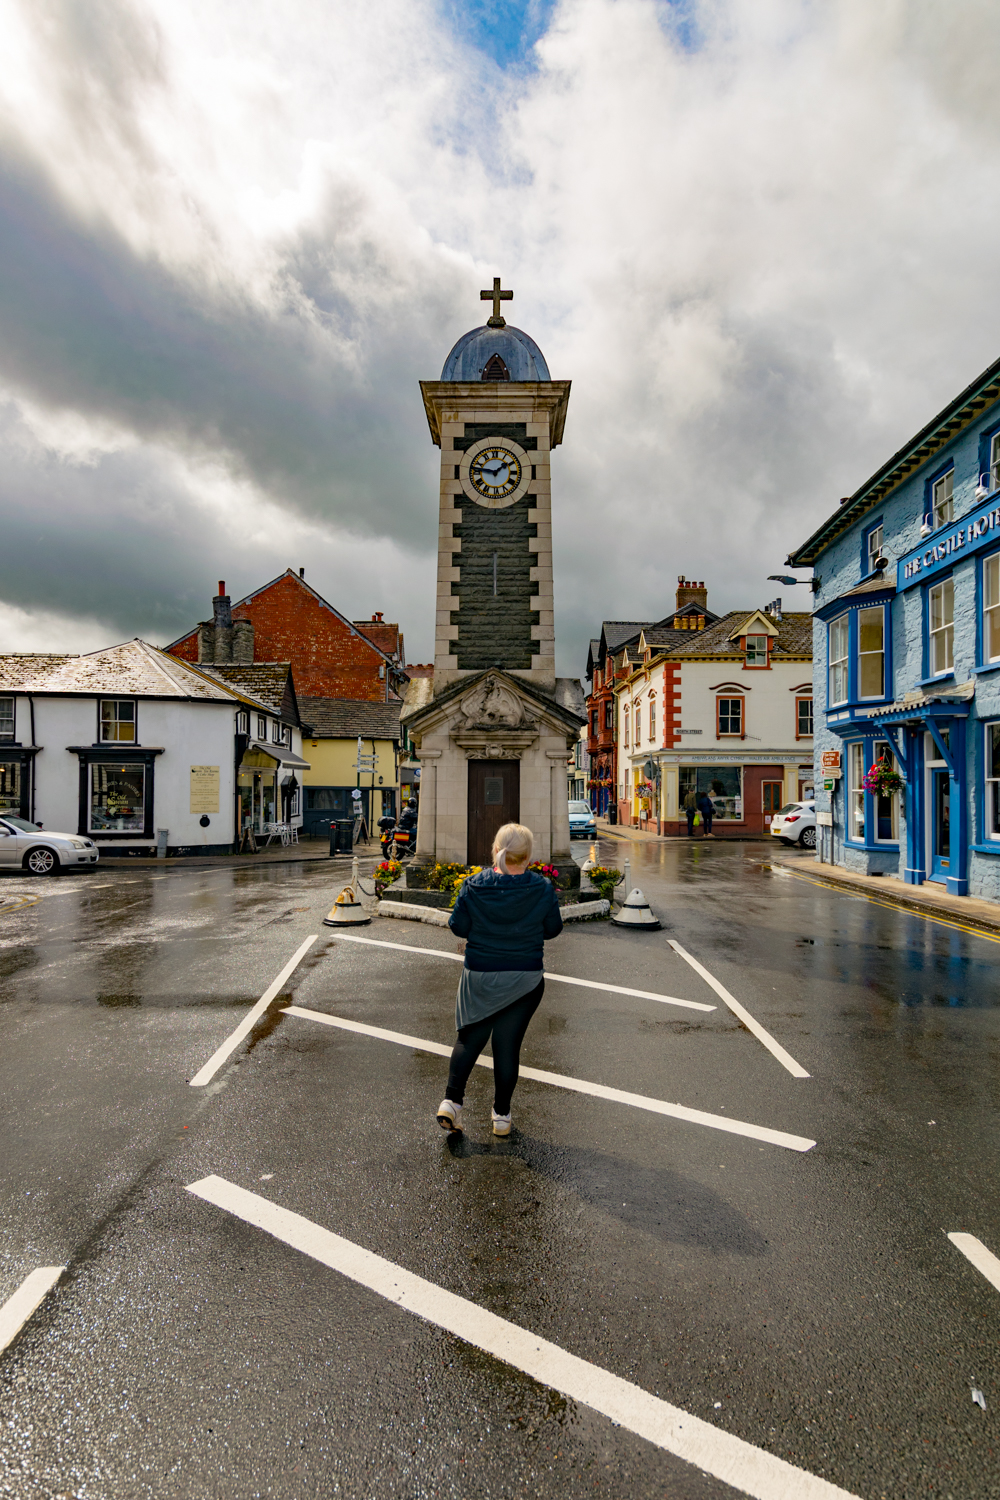 Stood in front of the clock tower in Rhayader, Mid Wales